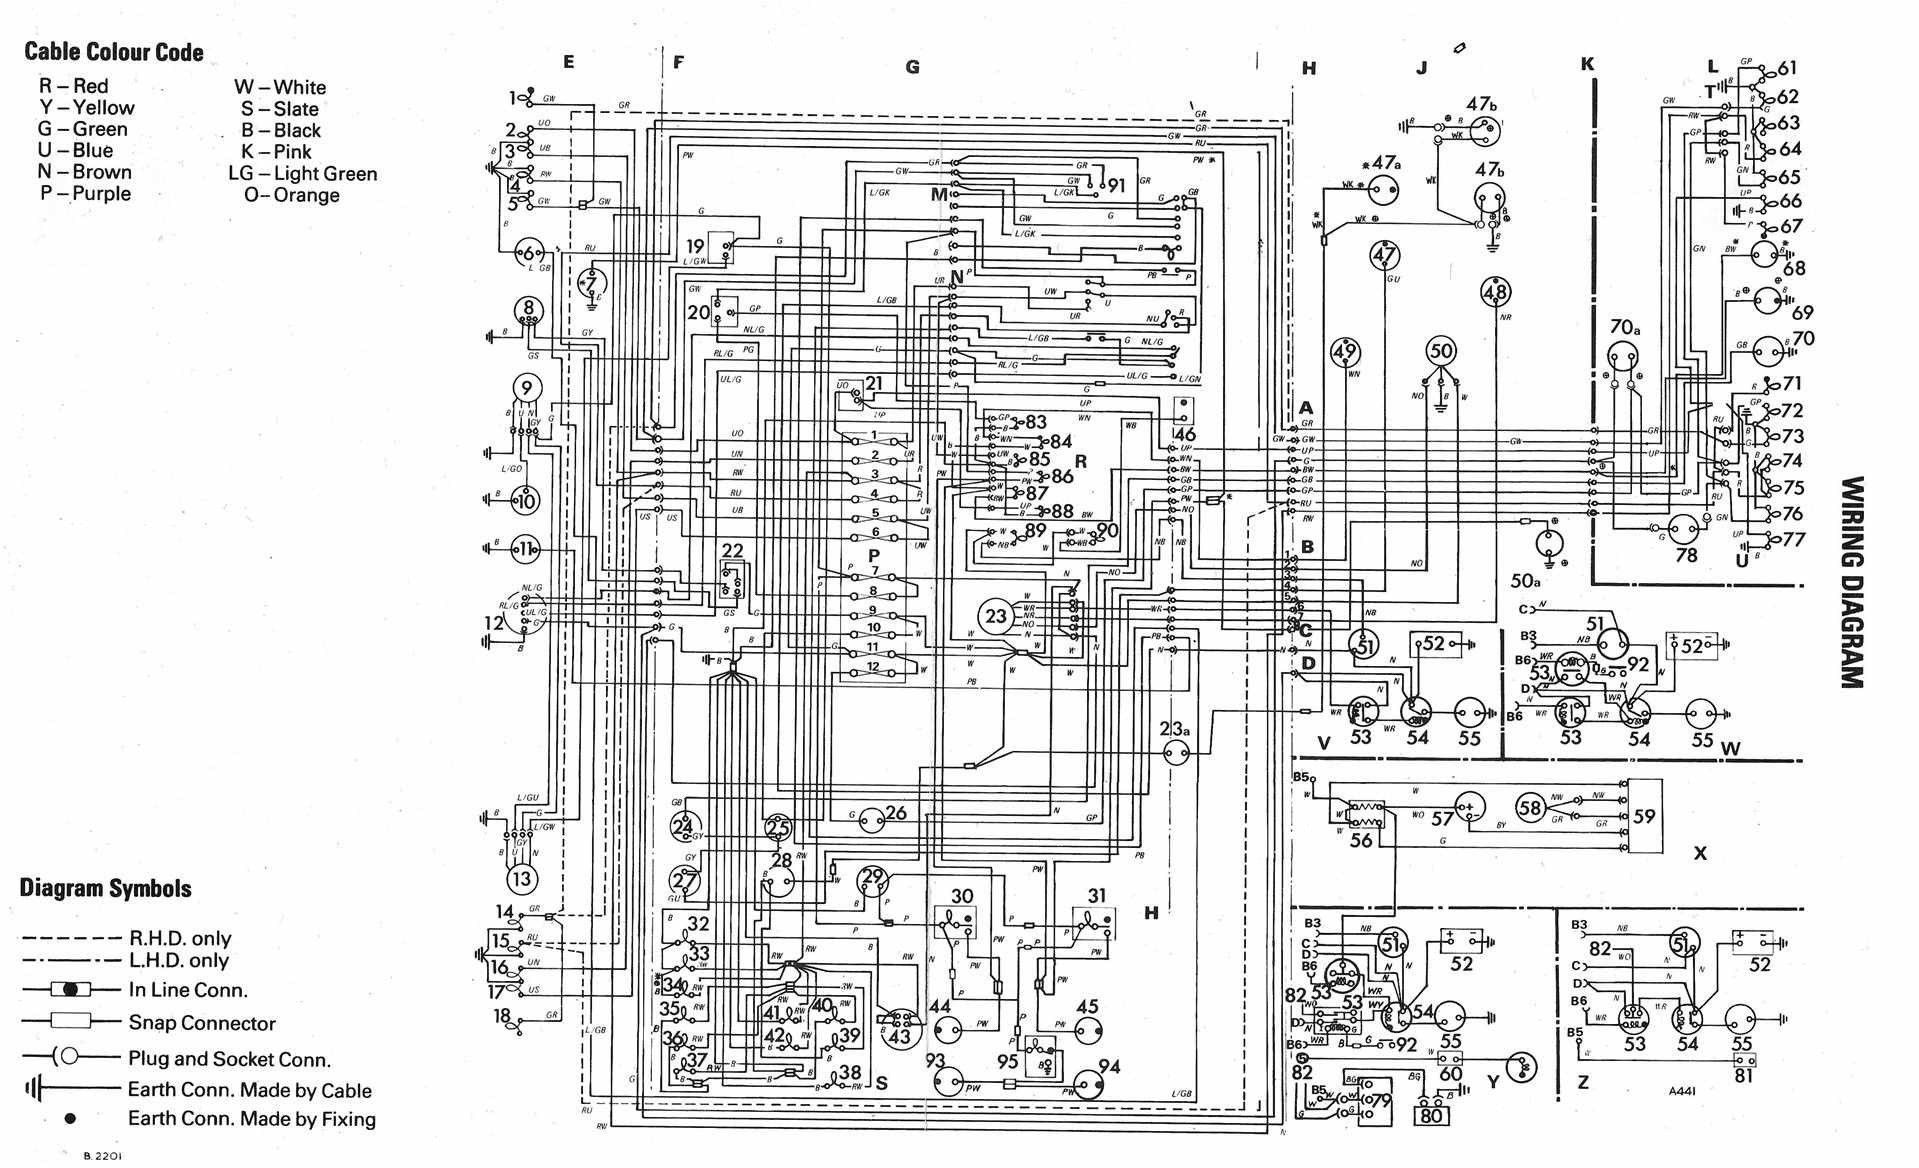 New Golf 4 Radio Wiring Diagram #diagram #diagramsample #